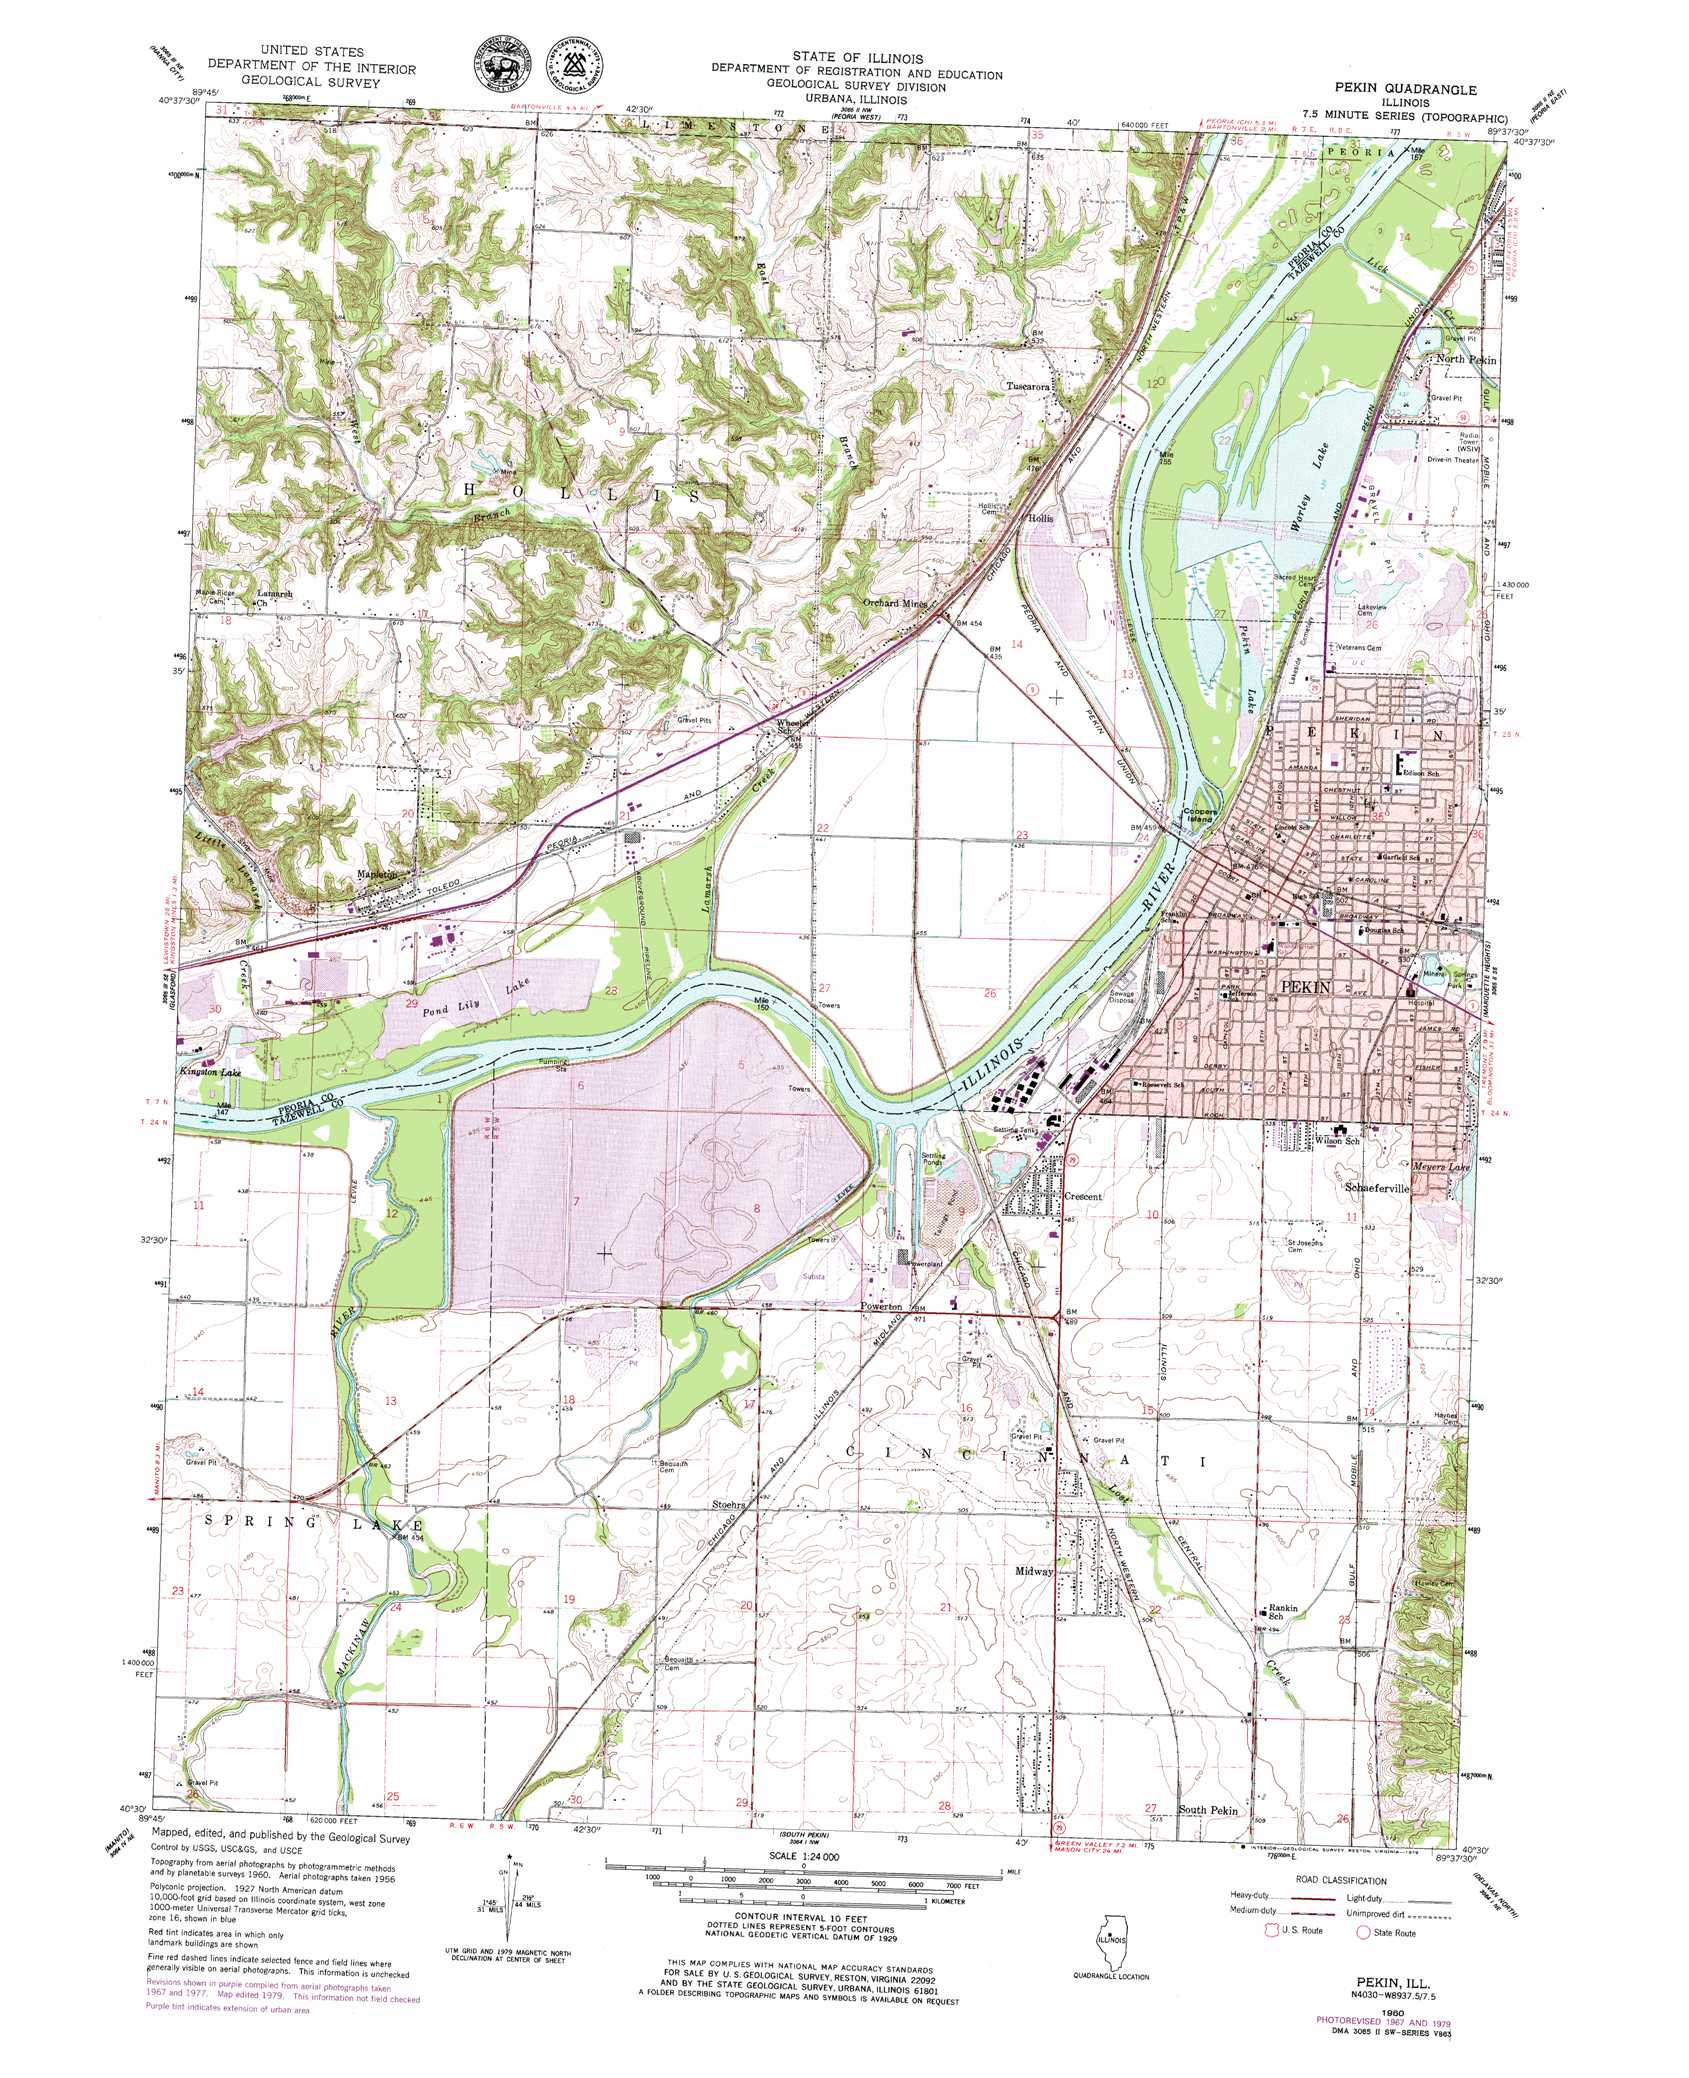 florida topographic map with 40089e6 on 40089e6 as well 35118f4 moreover Maine Reference Map 493 as well 40110f8 further Ai Topo.